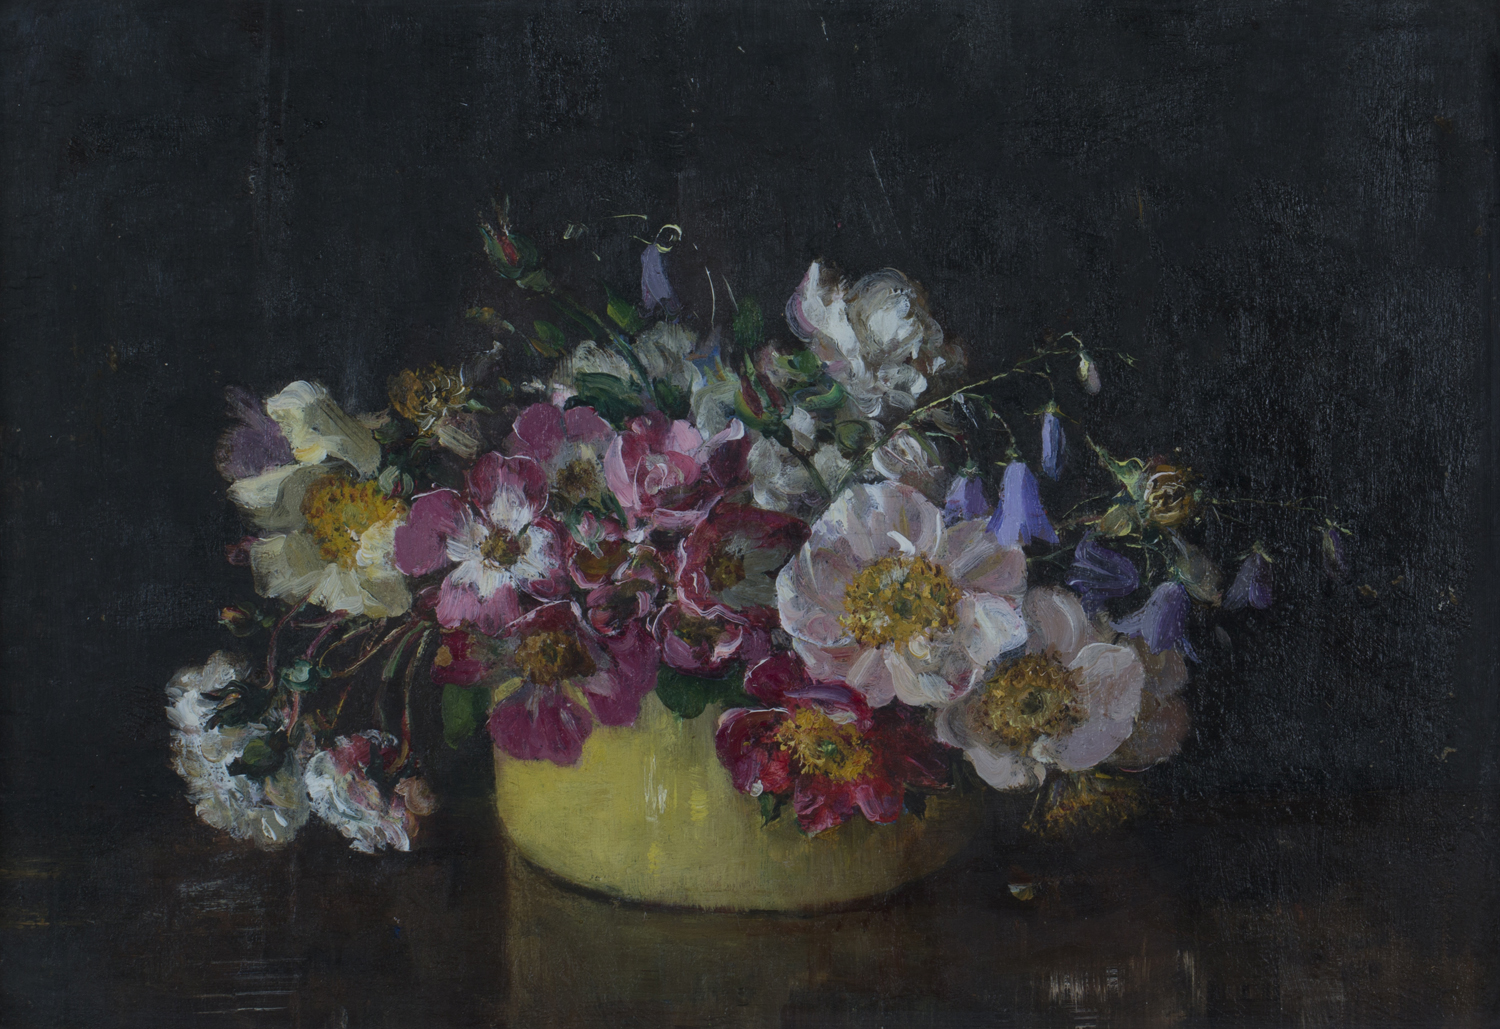 Emily Beatrice Bland - 'Single Roses in a Yellow Bowl', early 20th century oil on board, artist's